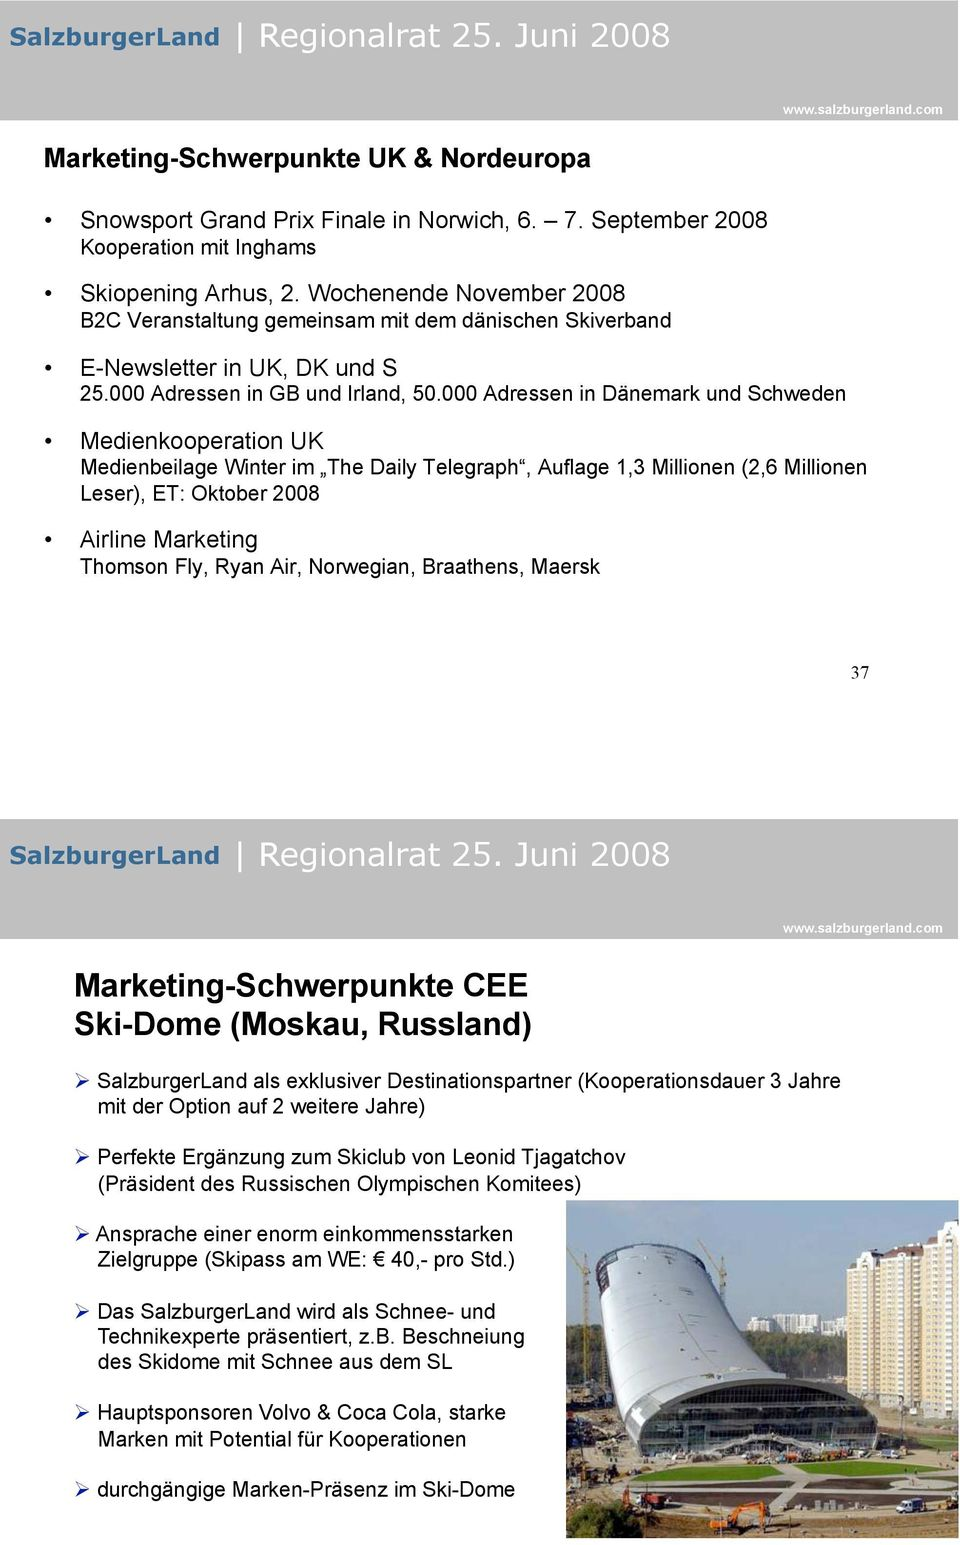 000 Adressen in Dänemark und Schweden Medienkooperation UK Medienbeilage Winter im The Daily Telegraph, Auflage 1,3 Millionen (2,6 Millionen Leser), ET: Oktober 2008 Airline Marketing Thomson Fly,